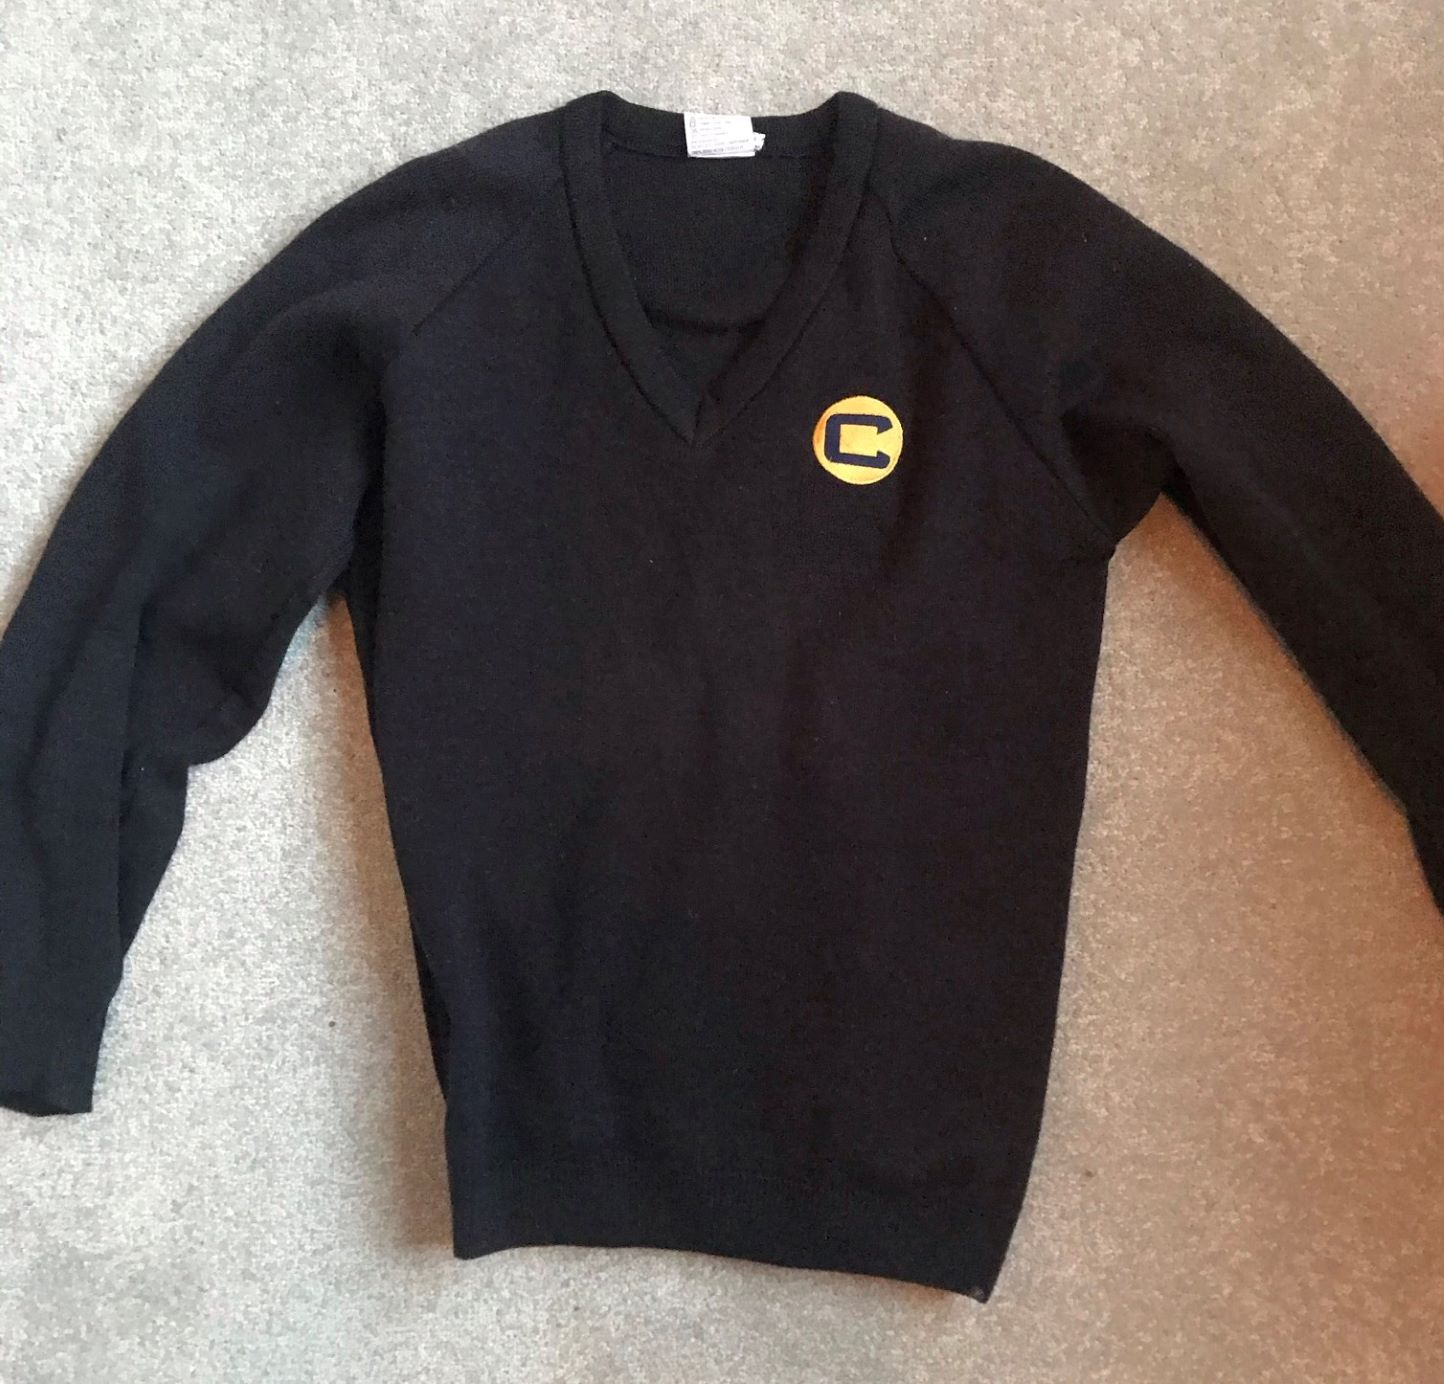 Charter North Jumper: Size 32 Marked